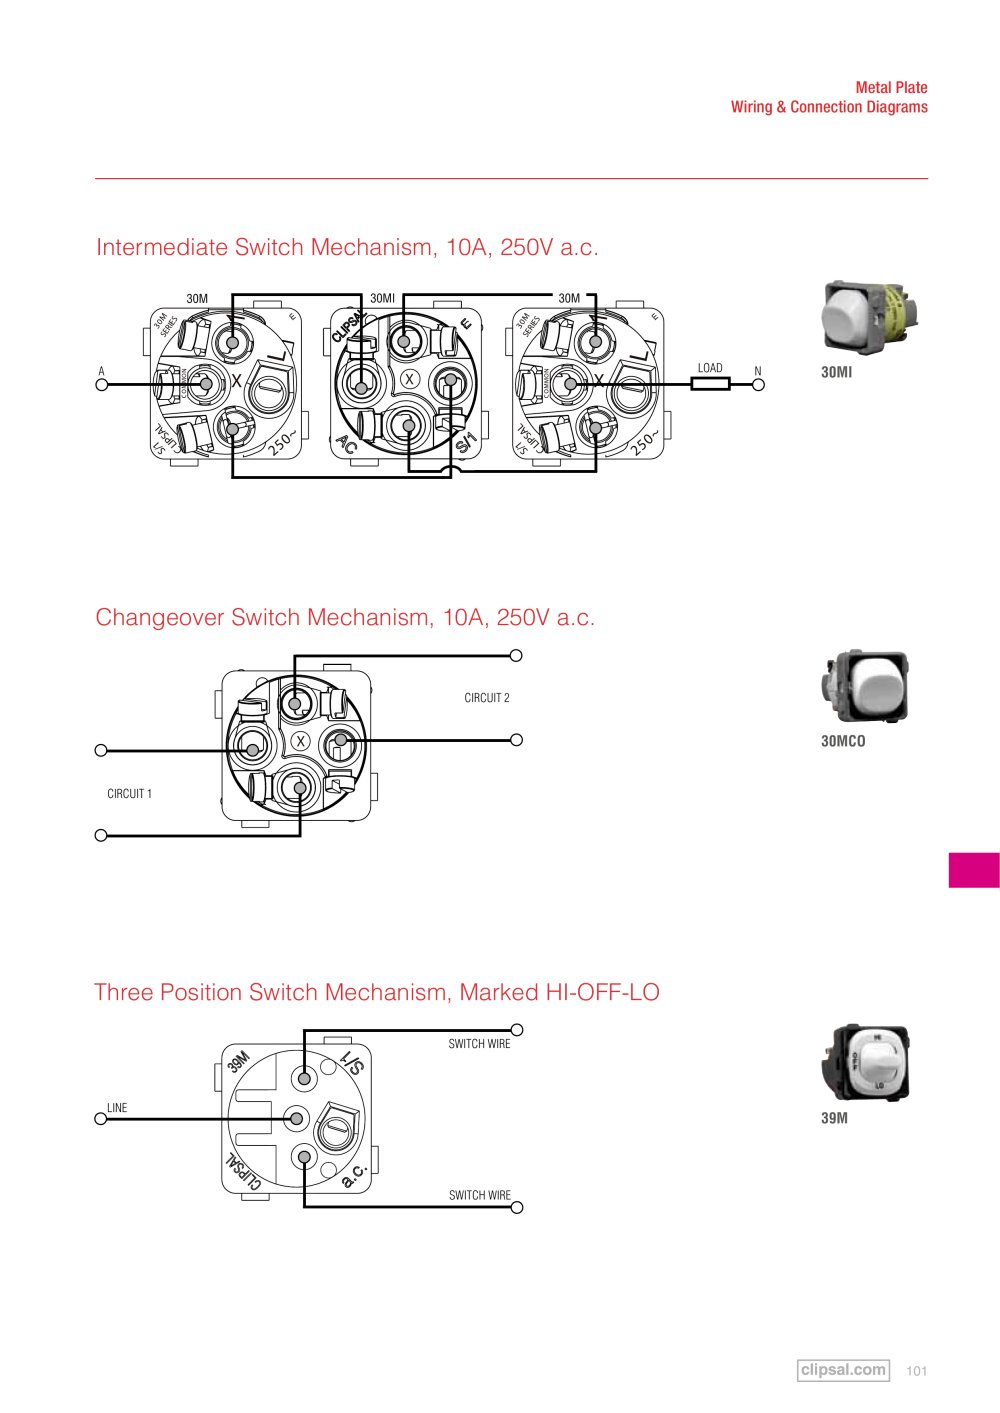 Clipsal Light Switch Wiring Diagram Australia on circuit diagram, light switch with receptacle, electrical outlets diagram, dimmer switch installation diagram, light switch cover, light switch power diagram, light switch piping diagram, light switch timer, light switch cabinet, wall light switch diagram, light switch installation,